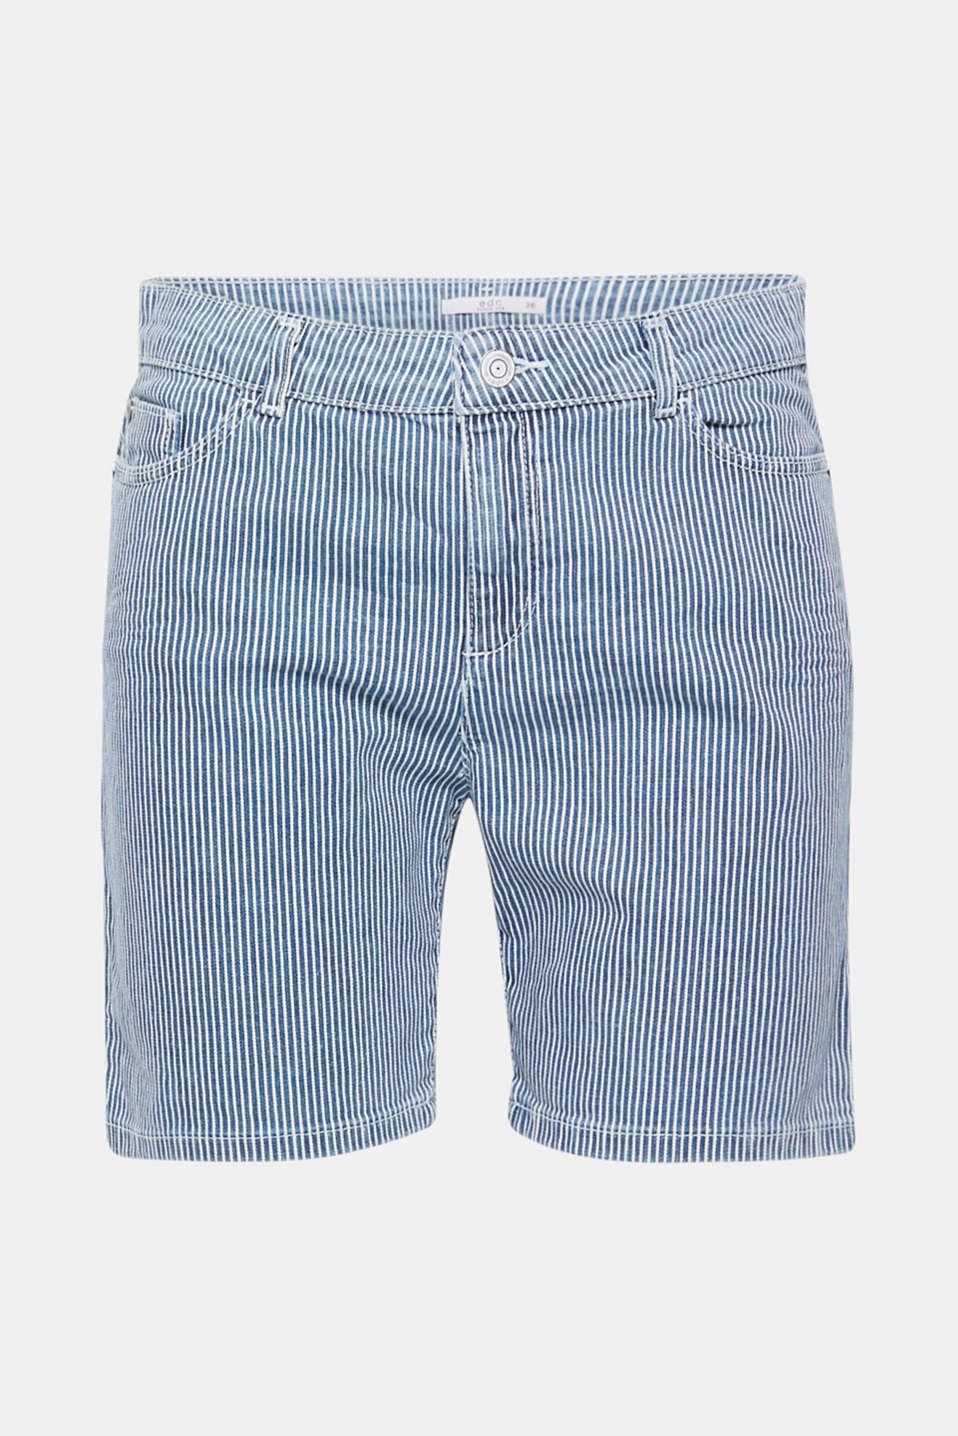 Shorts woven, GREY BLUE, detail image number 6